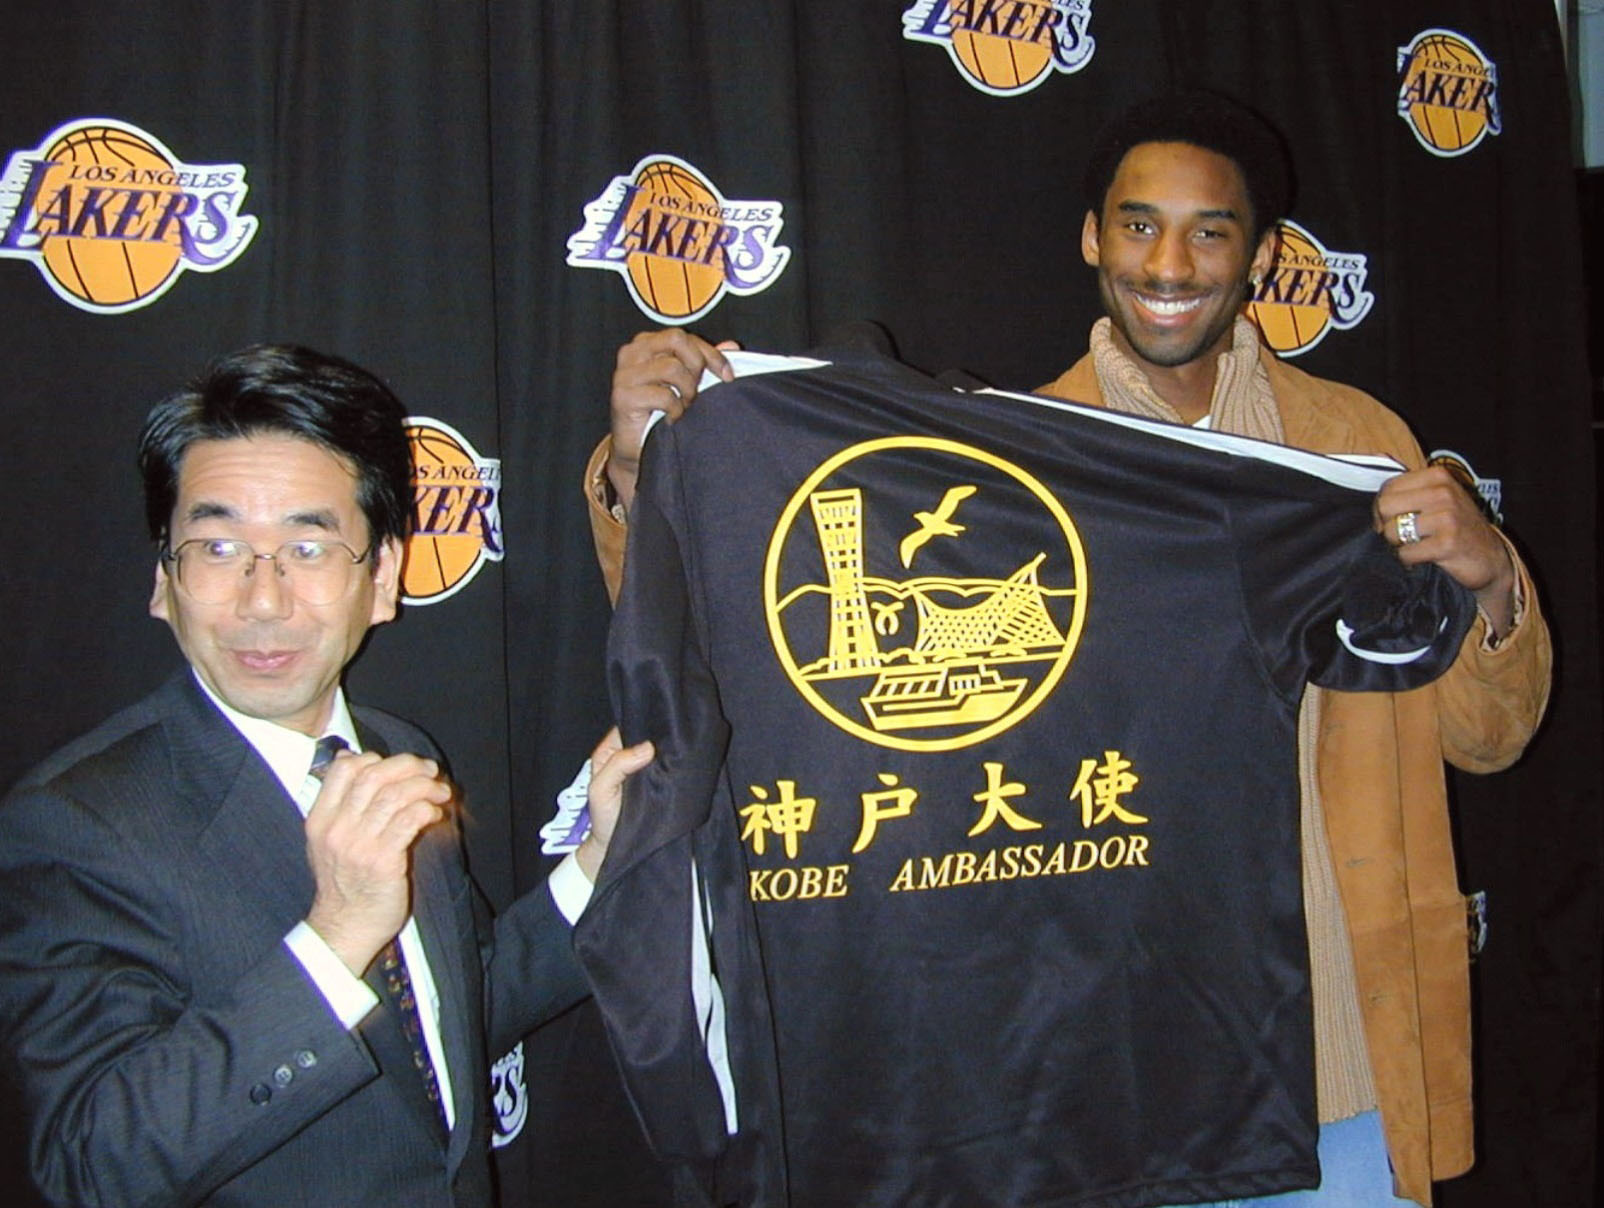 Kobe Bryant was named a friendship ambassador for the city of Kobe in 2001, three years after he visited the city to support reconstruction efforts following the 1995 Great Hanshin Earthquake. | KYODO